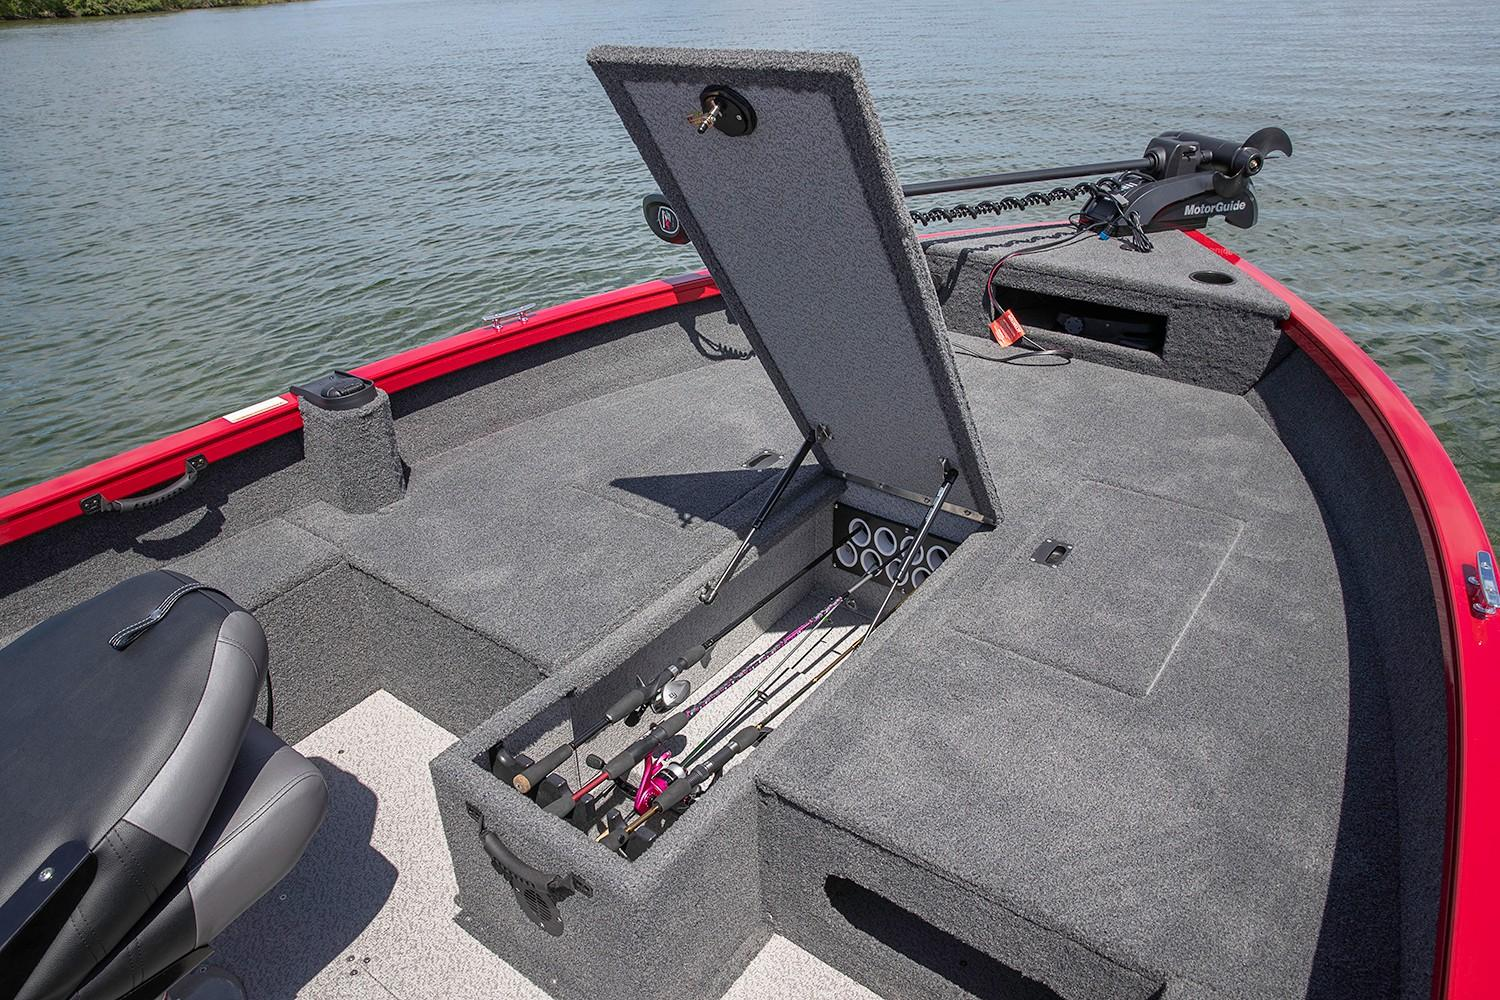 2019 Crestliner 1650 Pro Tiller in Kaukauna, Wisconsin - Photo 4